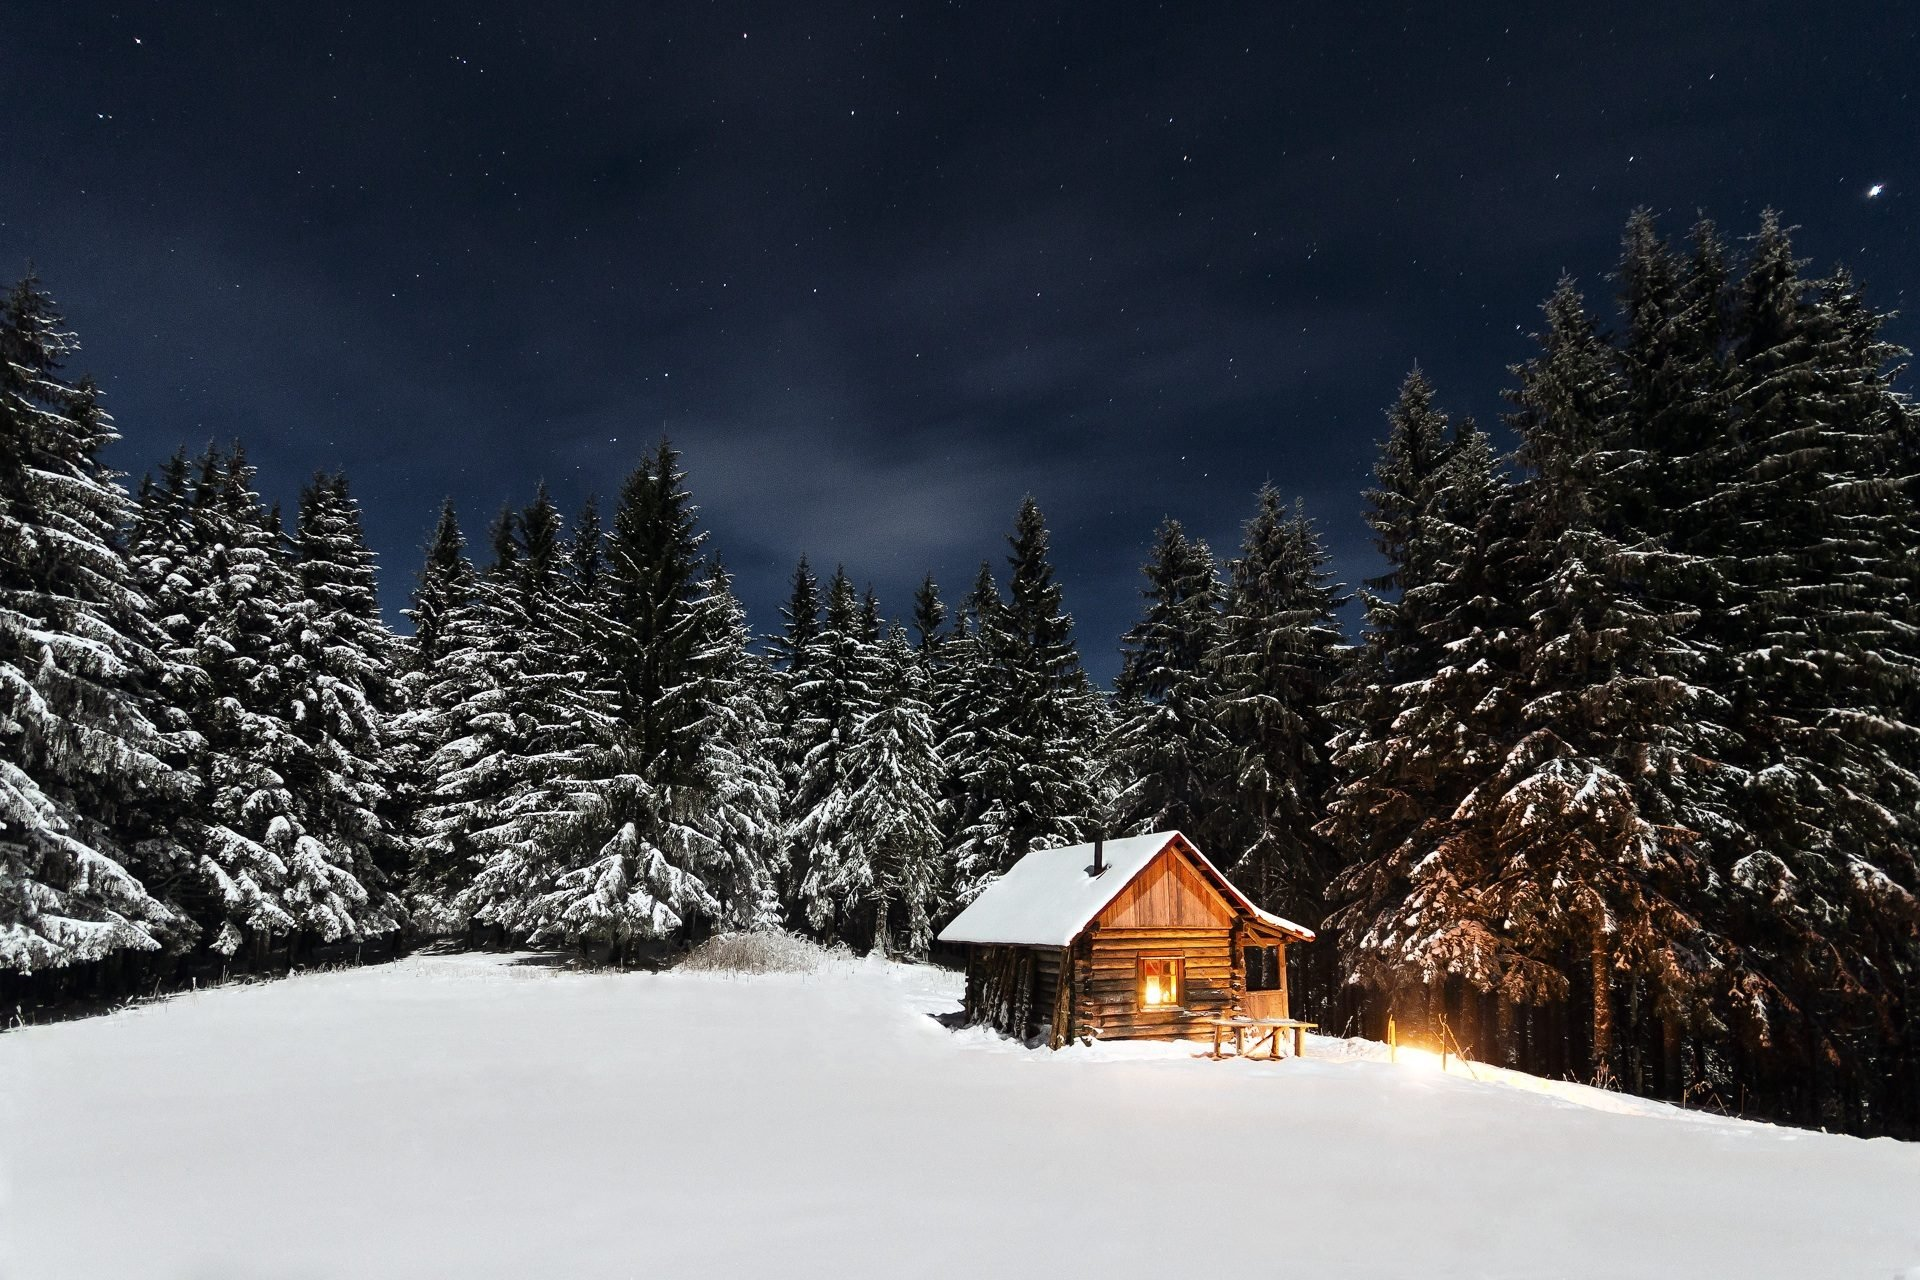 Winter Cabin Wallpapers Full HD Download 1920x1280